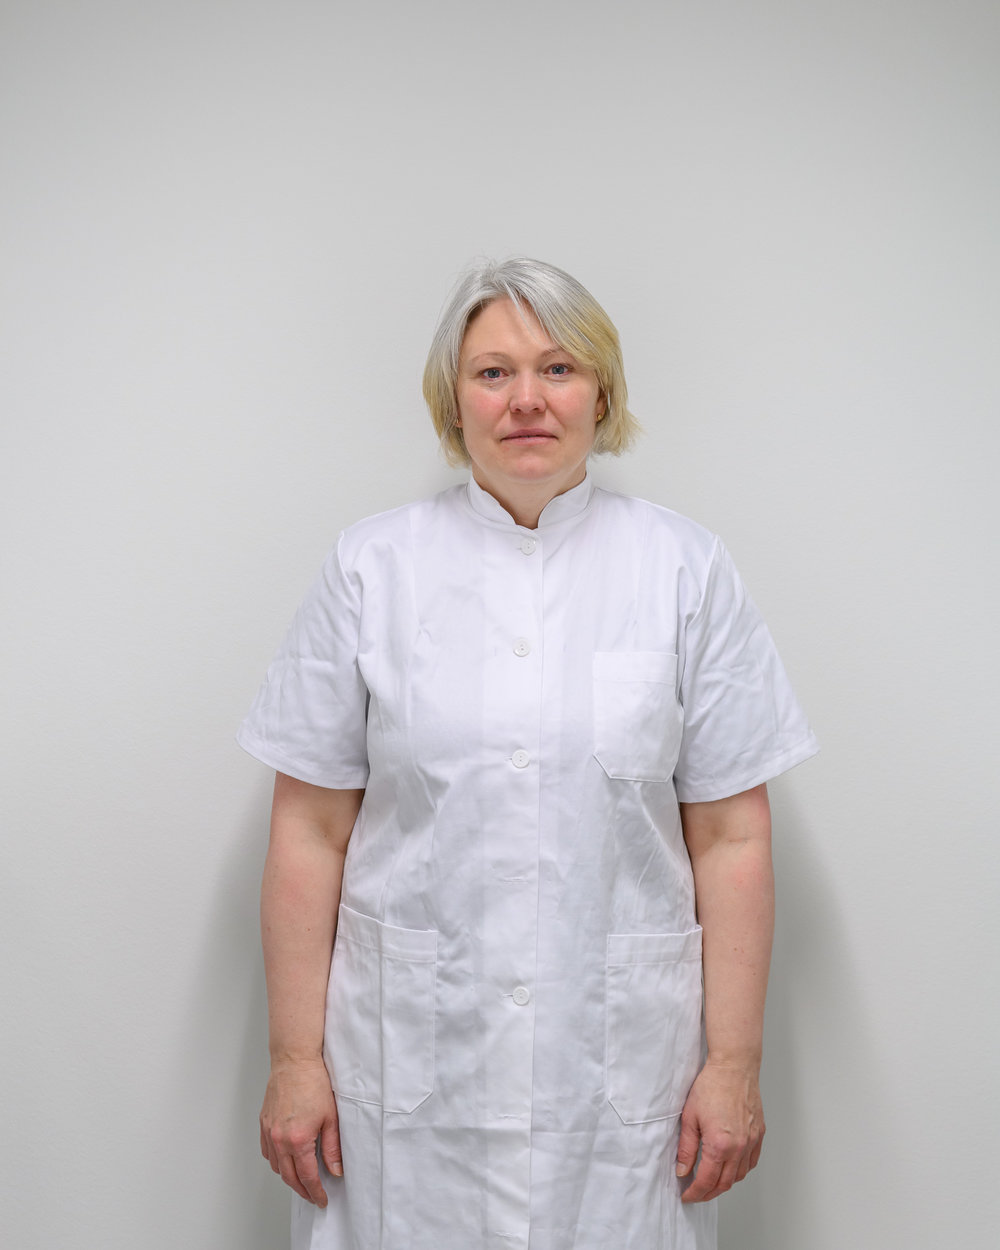 Belinda Nielsen, head of the Sensory Laboratory at the Department of Food Science